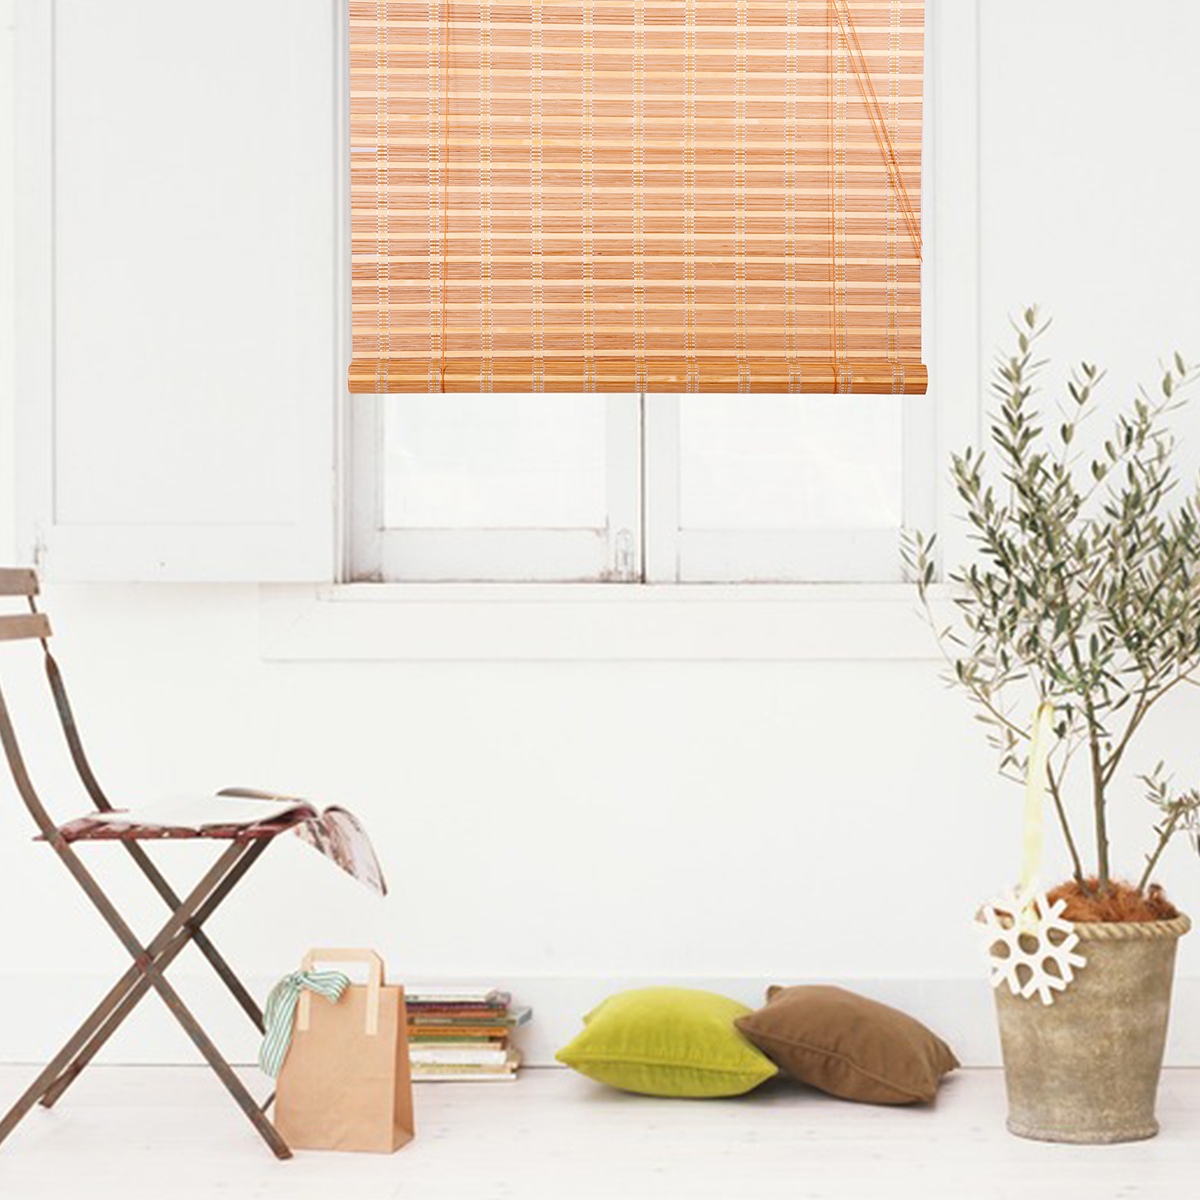 up feel blinds oriental these pin roll any shades add an bamboo exquisite to window